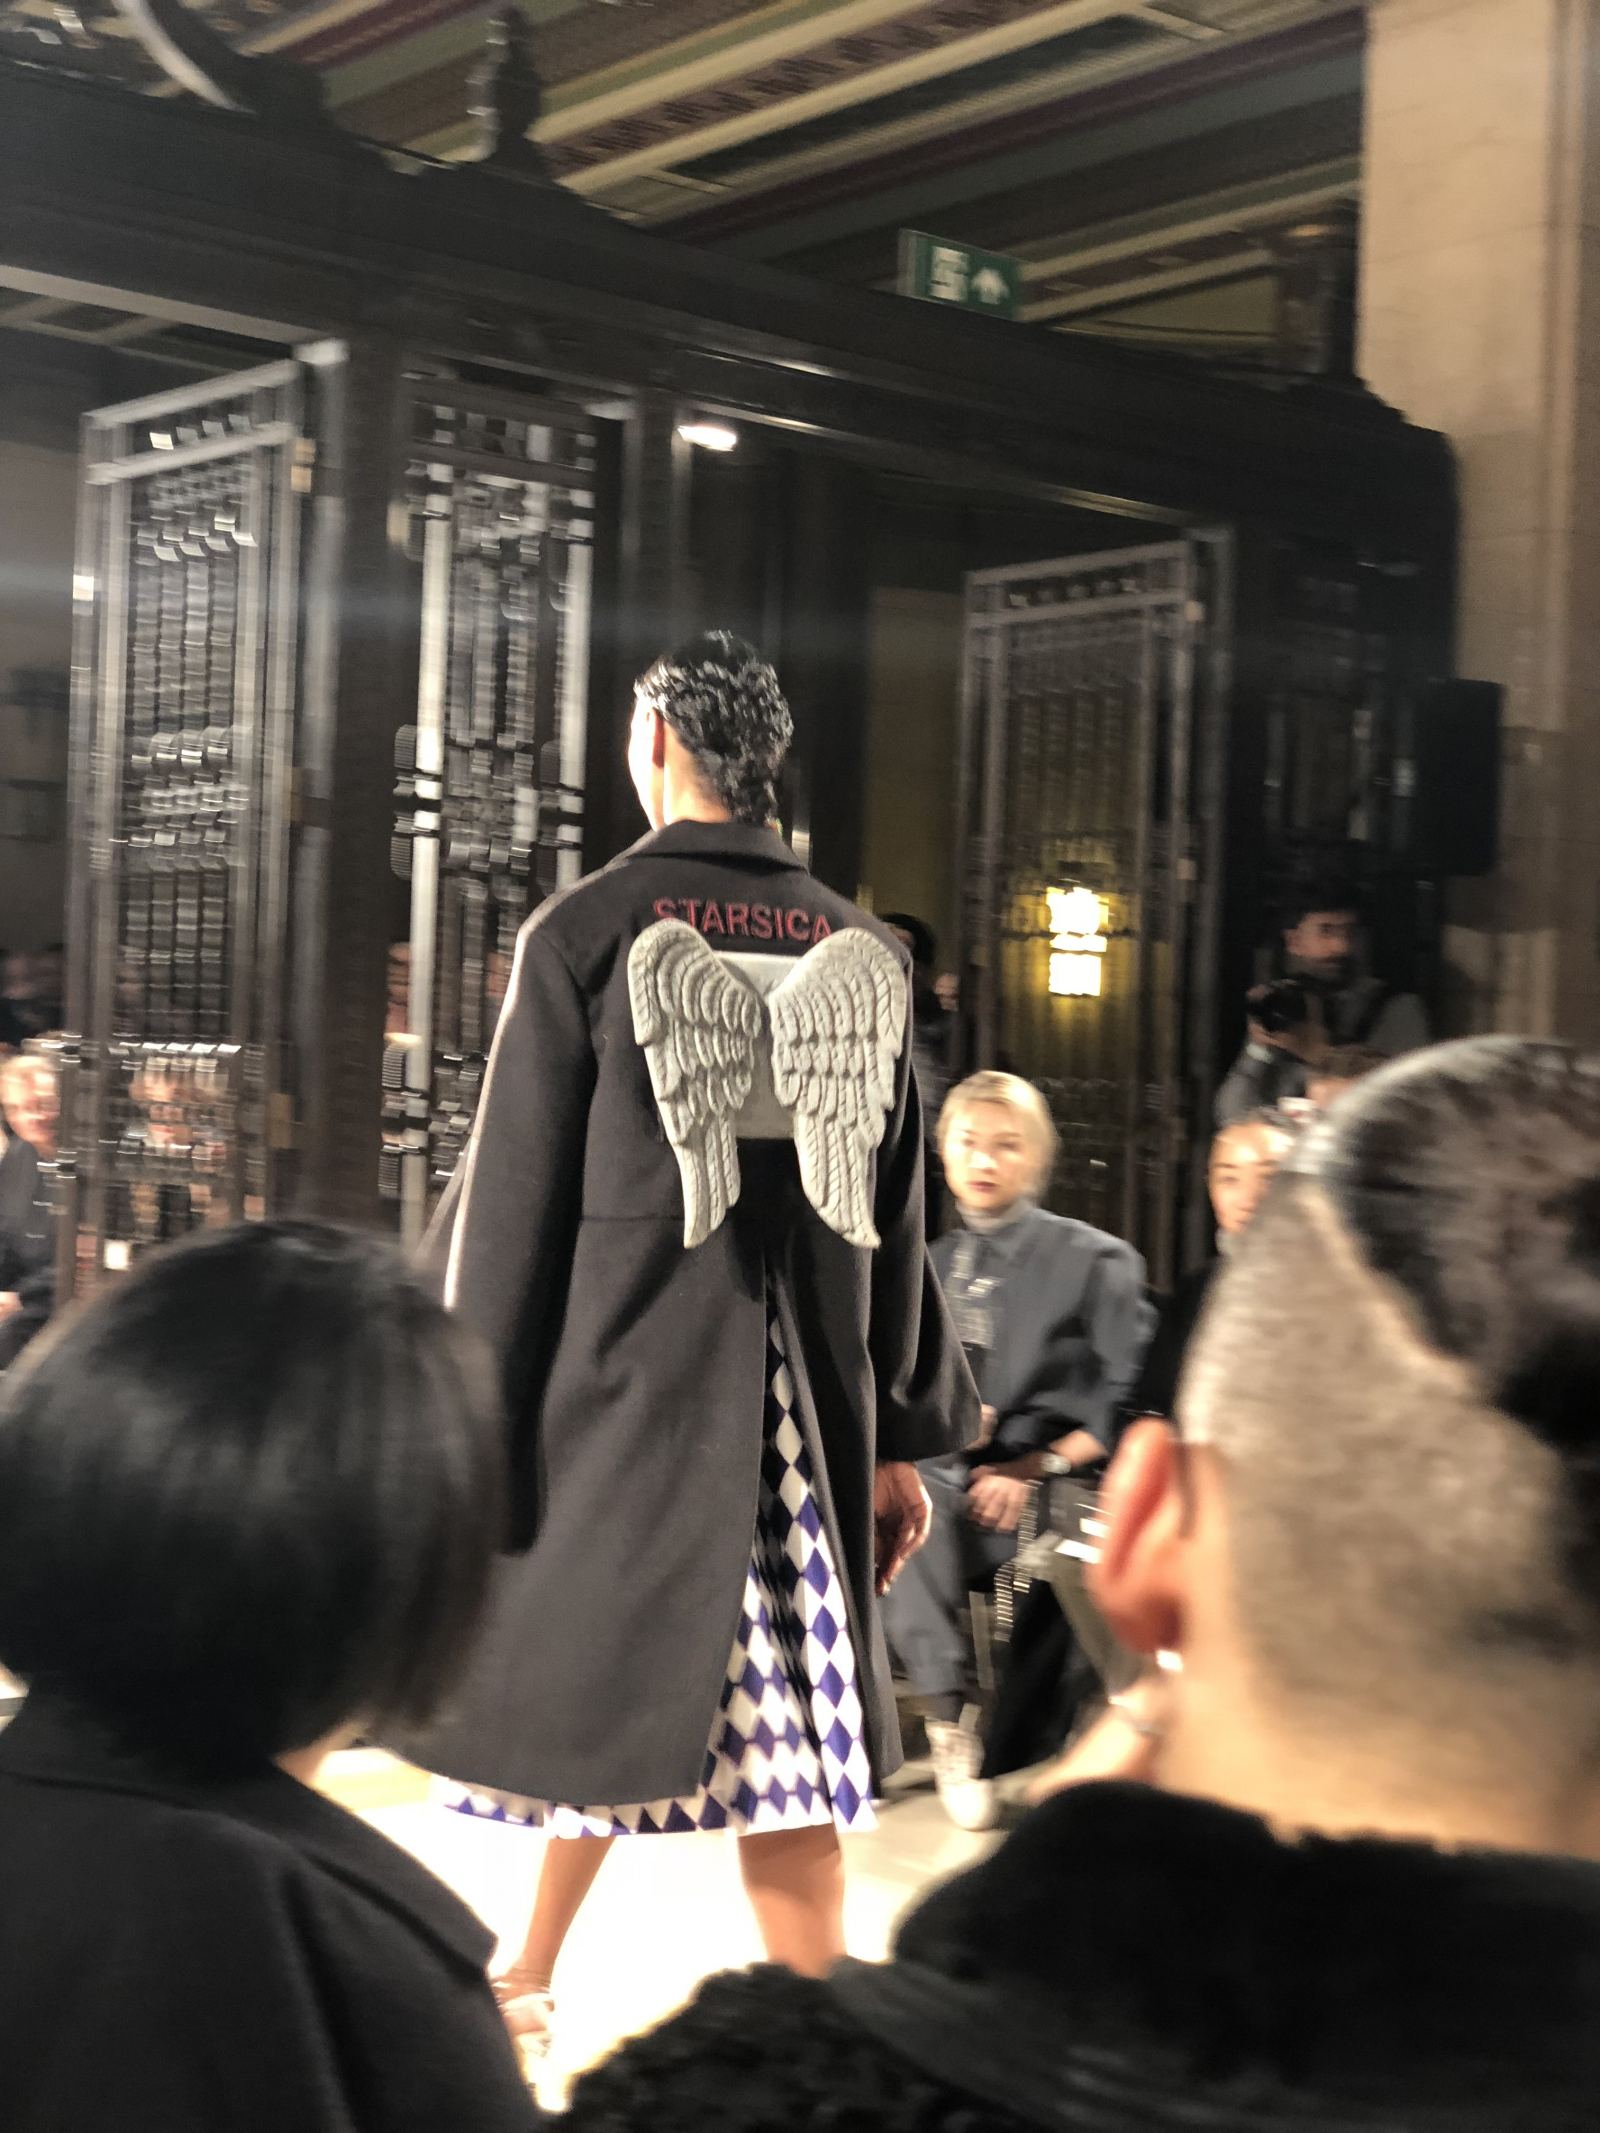 STARSICA FW18 LONDON FASHION WEEK a model with wings attached to the back of her coat